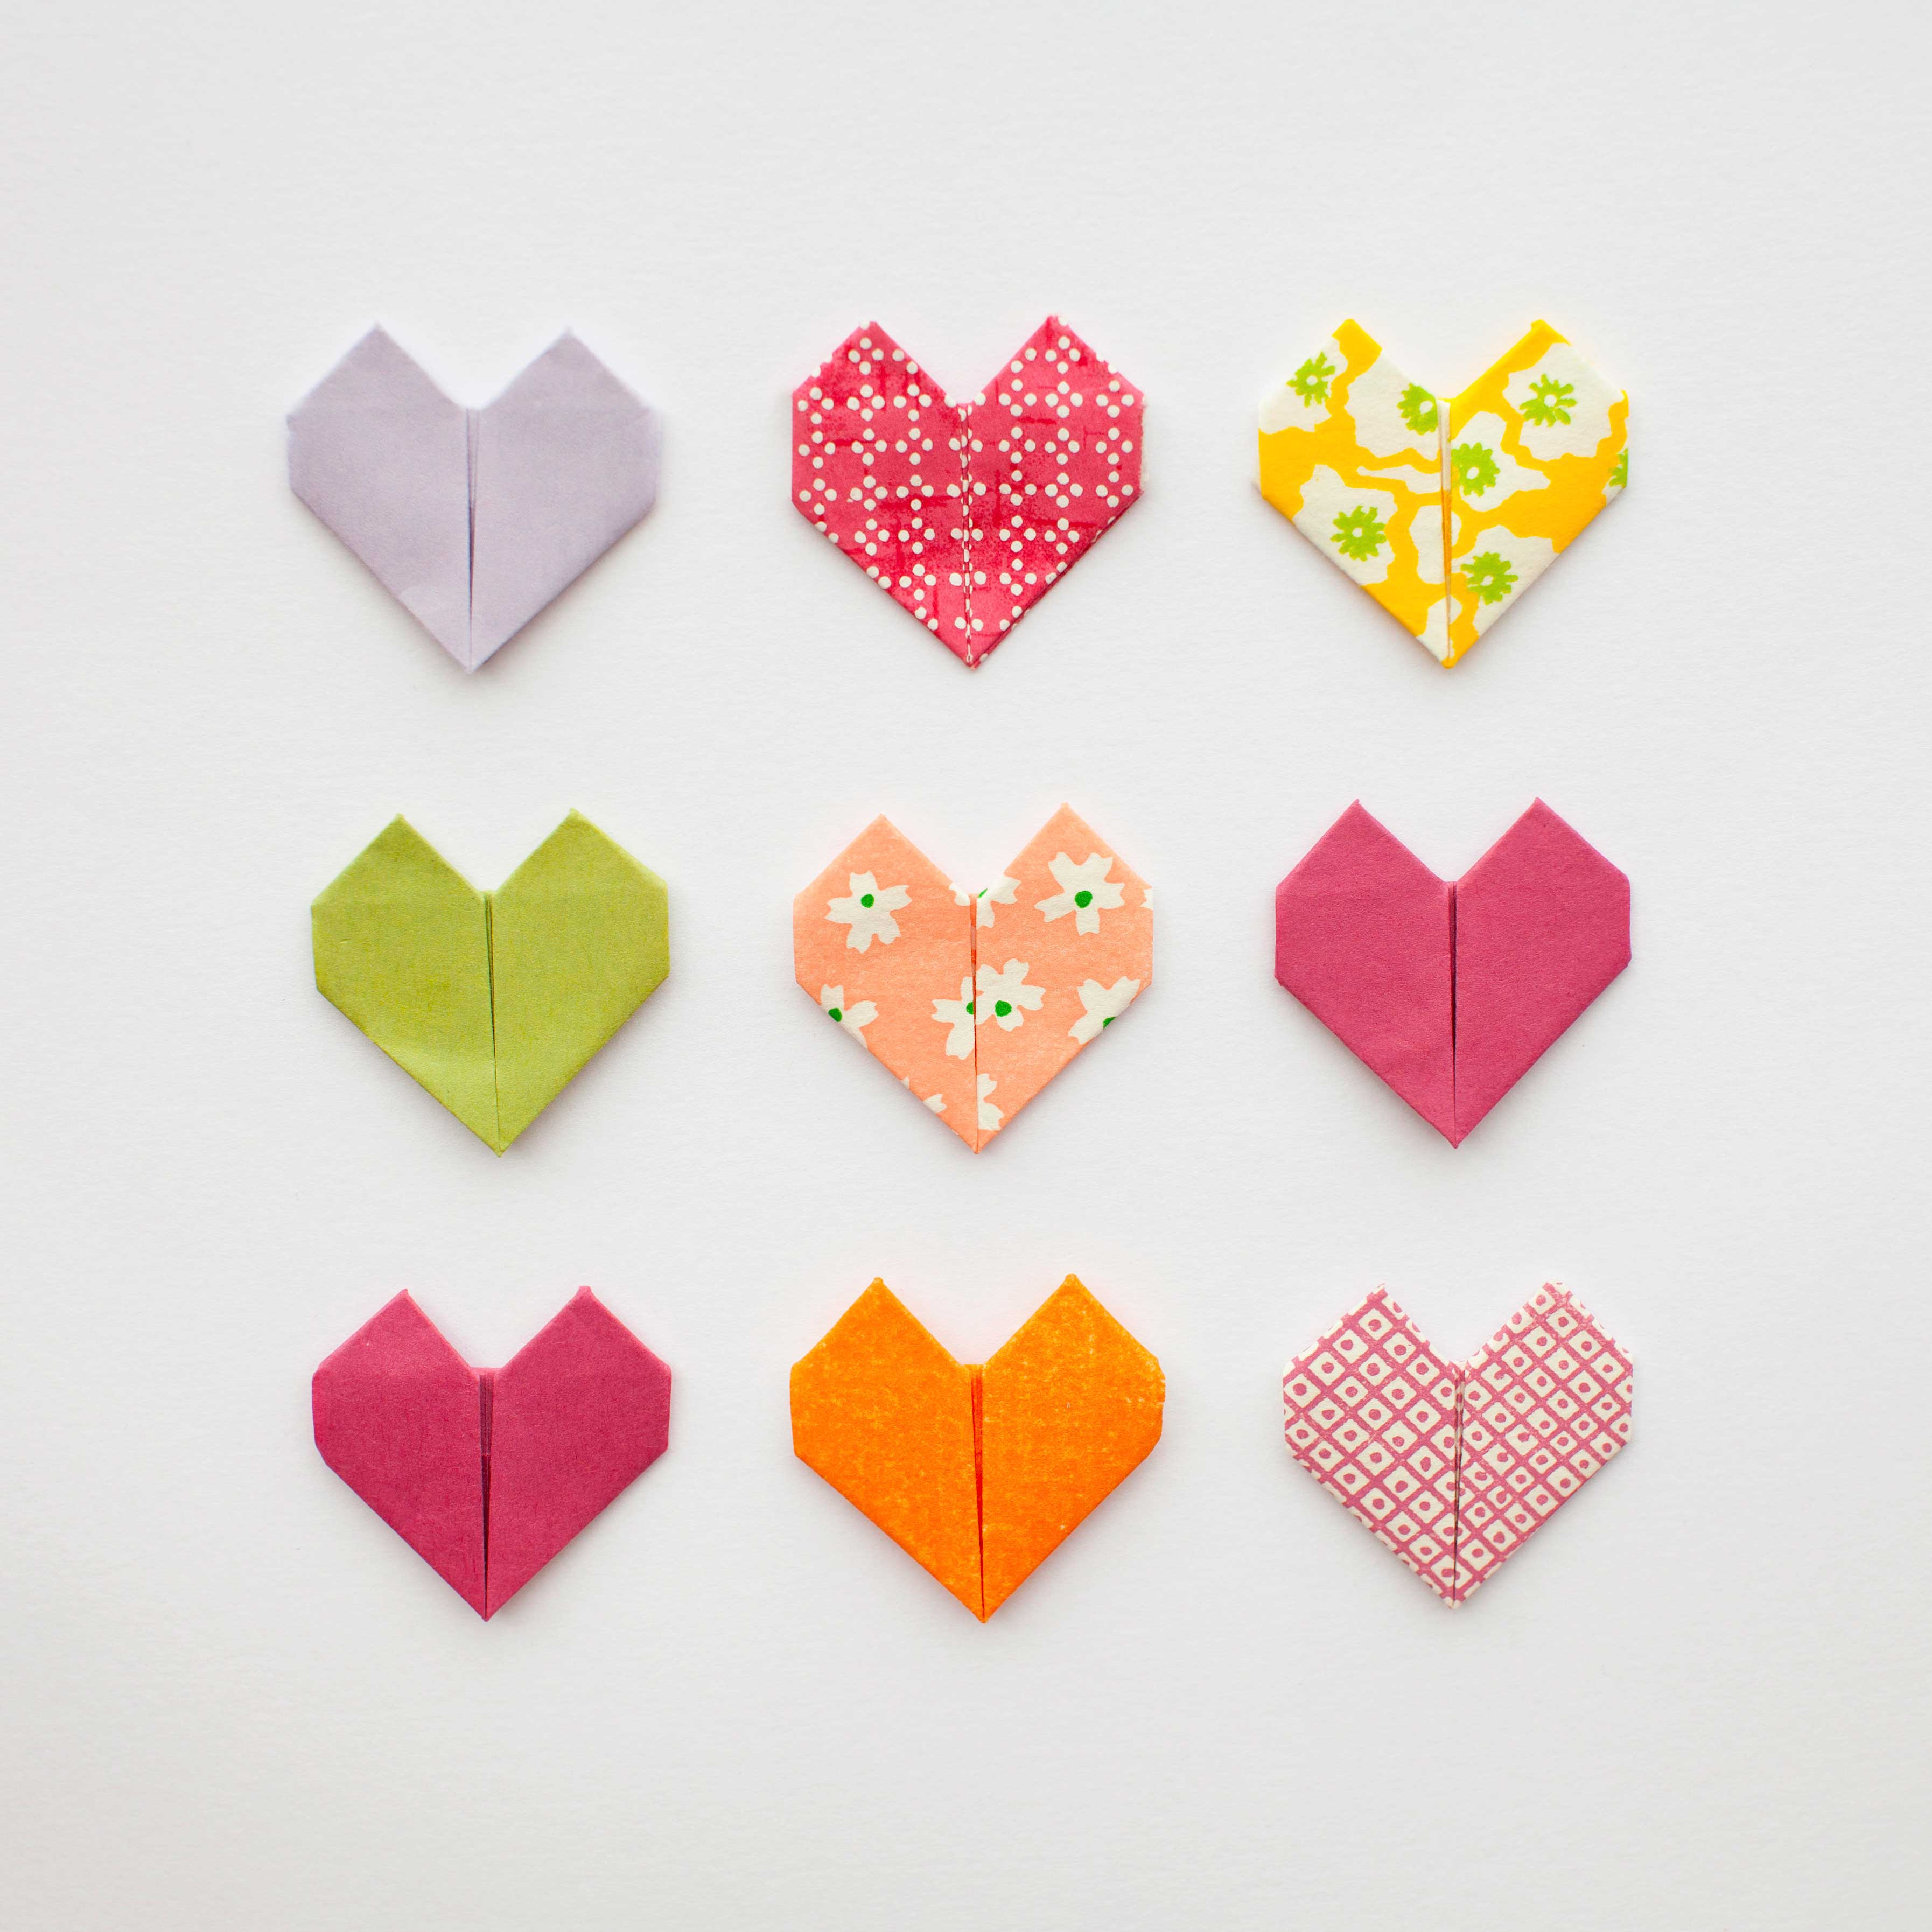 DIY Origami Hearts for Valentines Day